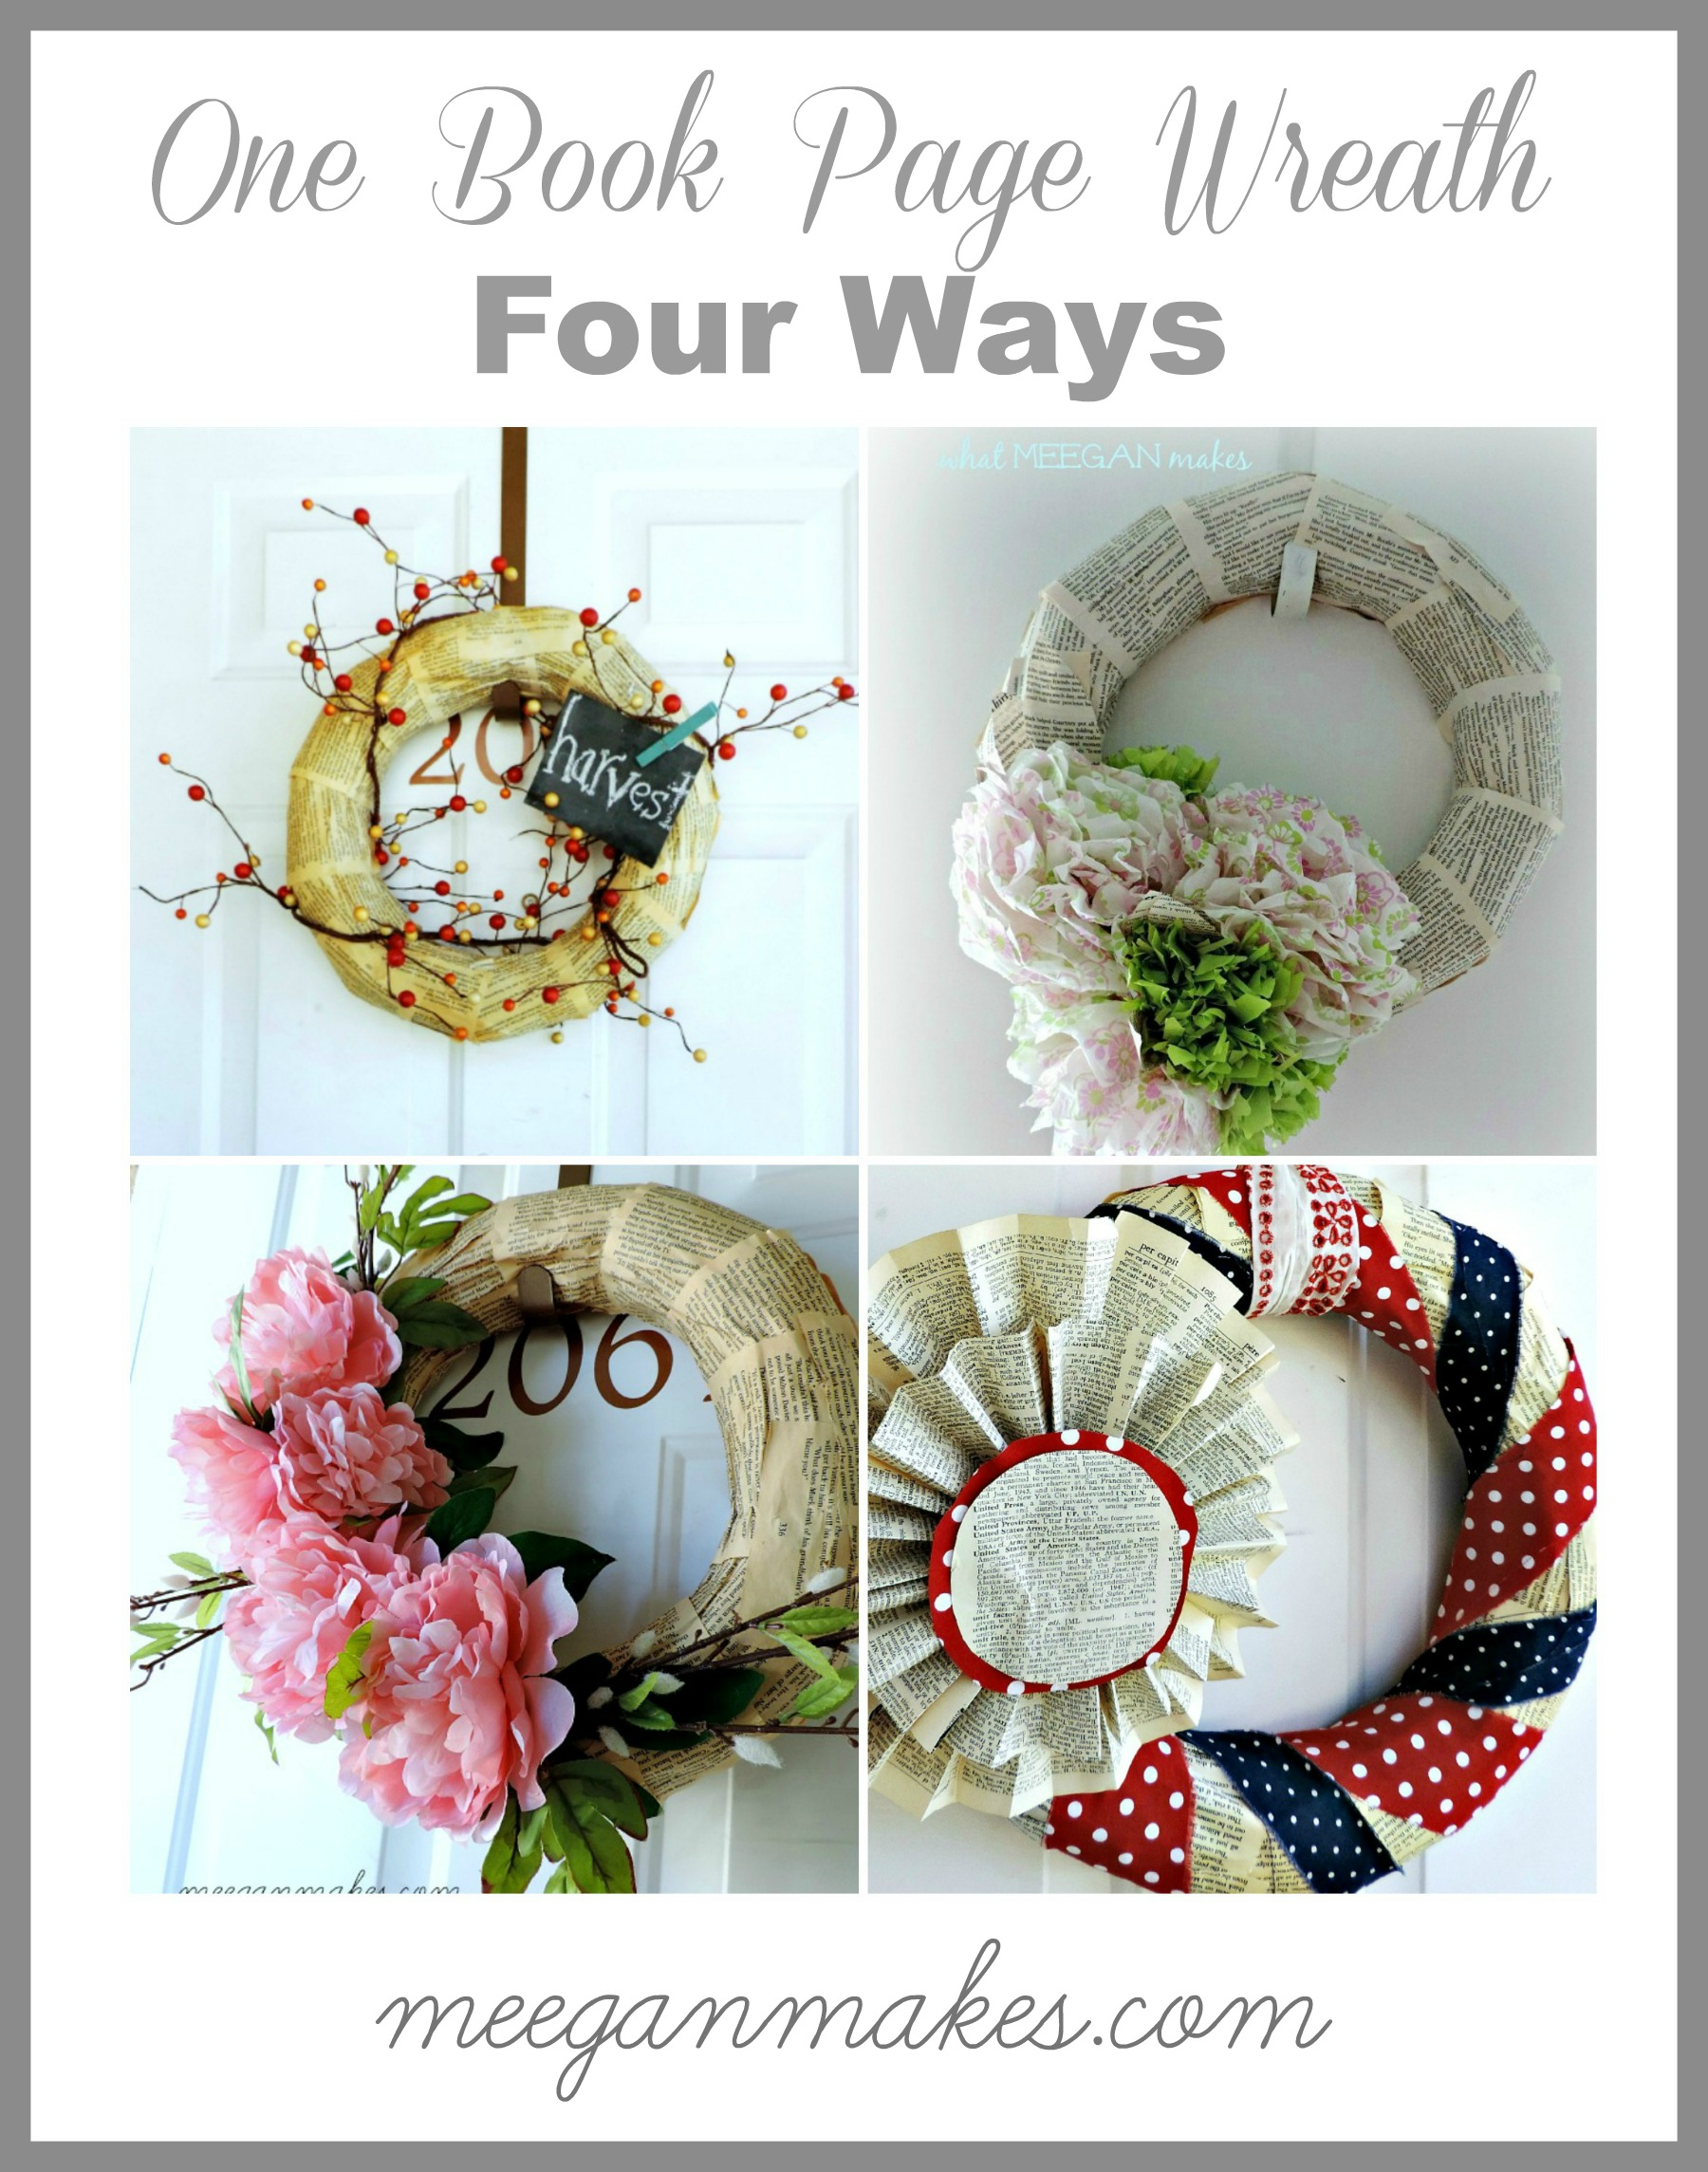 One Book Page Wreath Four Ways